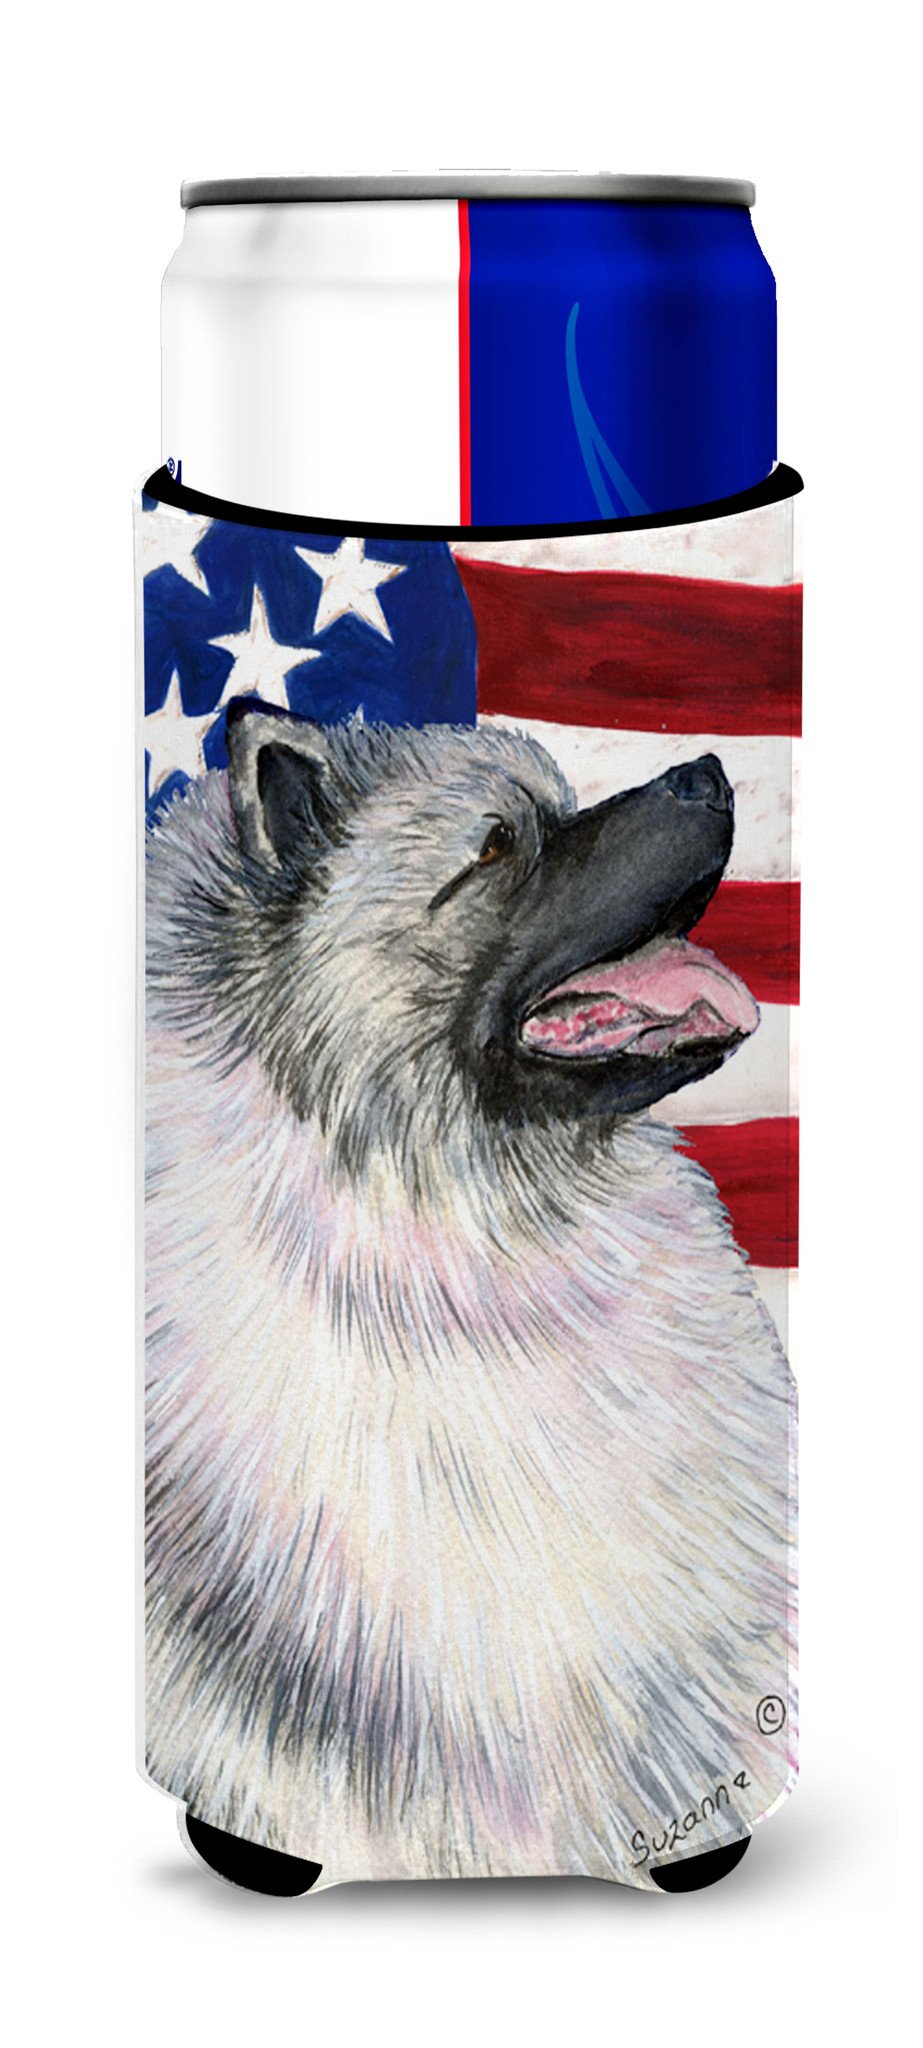 USA American Flag with Keeshond Ultra Beverage Insulators for slim cans SS4051MUK by Caroline's Treasures